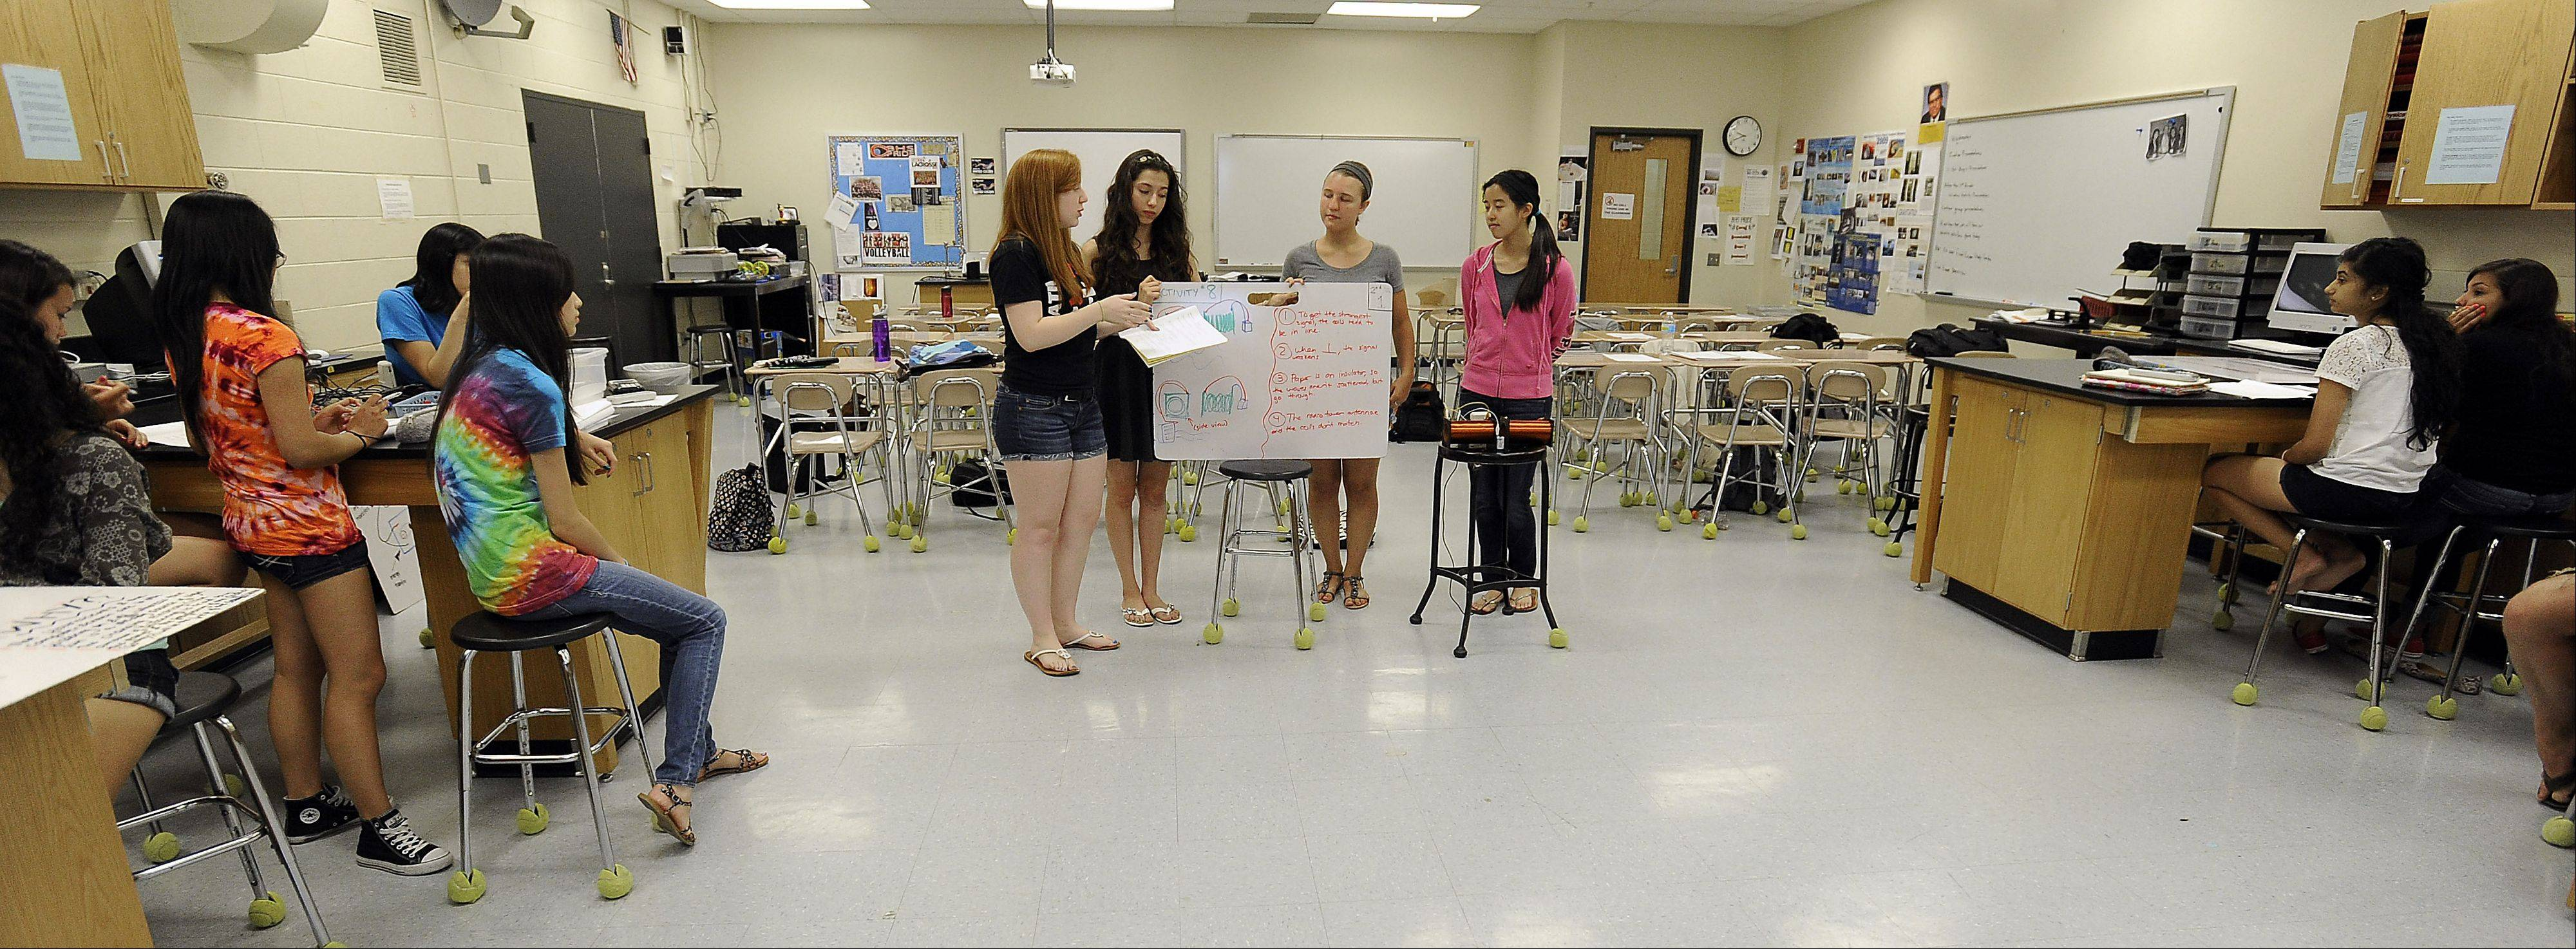 In a predominantly female physics class at Barrington High School, Courtney Wilt, 16, of Inverness, Karen Rojas, 16, of Carpentersville, Leah Thomas, 16, of Barrington and Jenny Vu, 16, of Barrington explain their physics project to the rest of their classmates during summer school.